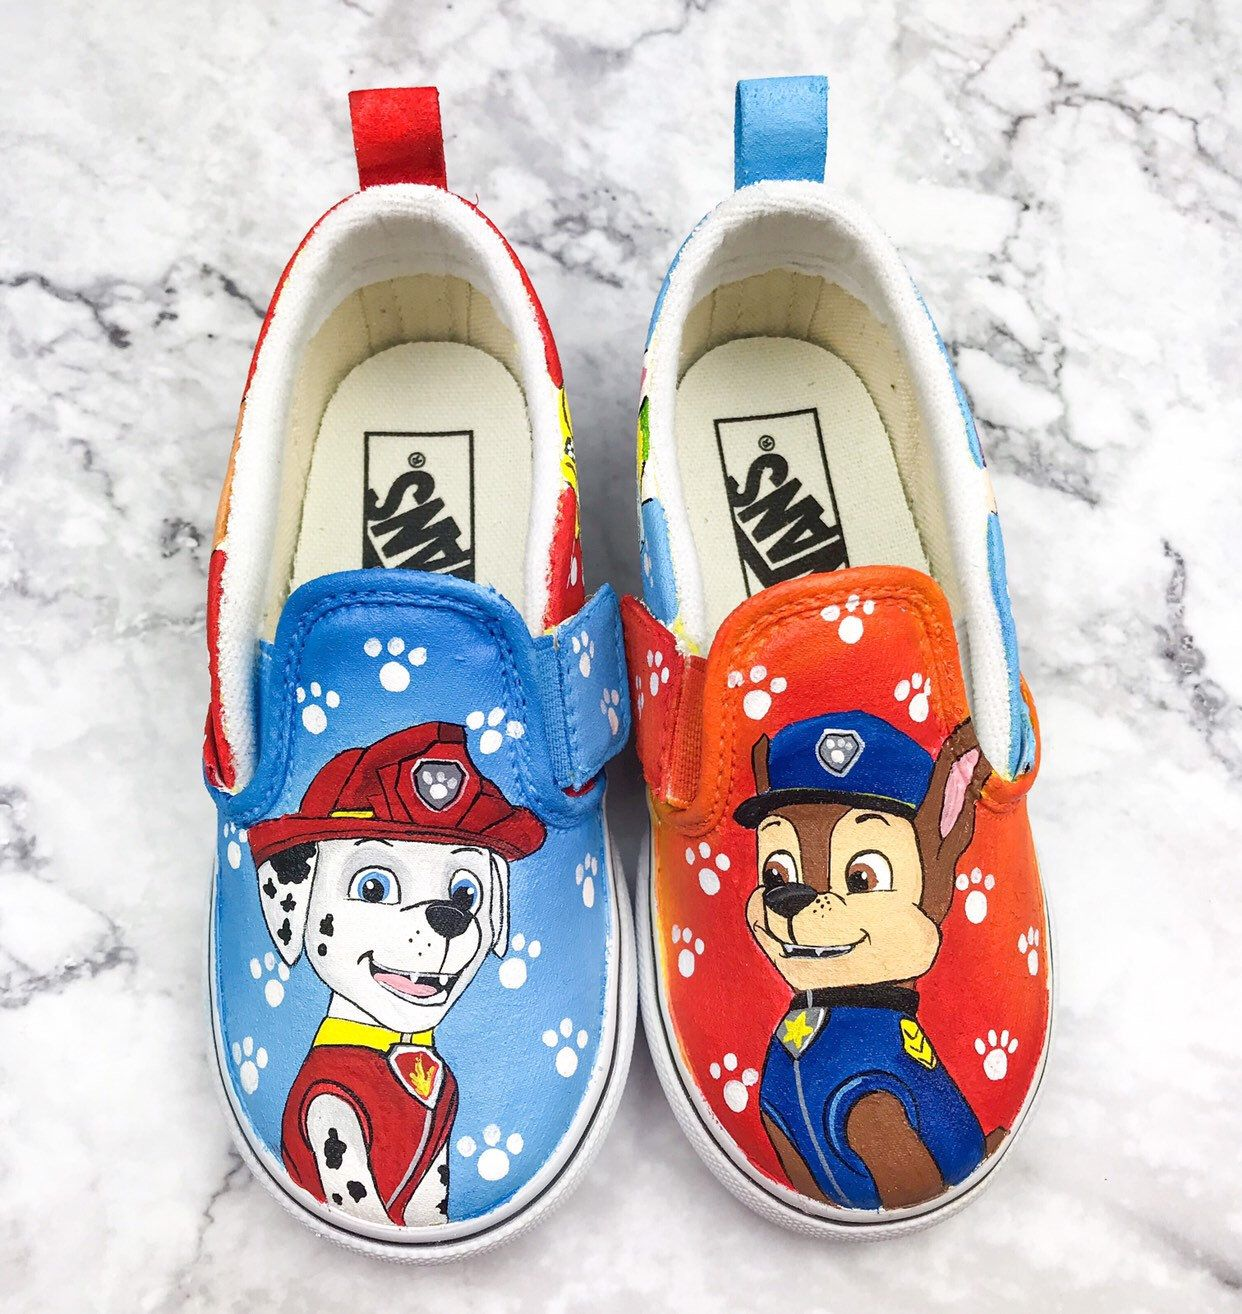 Paw Patrol Painted Shoes   Etsy   Paw